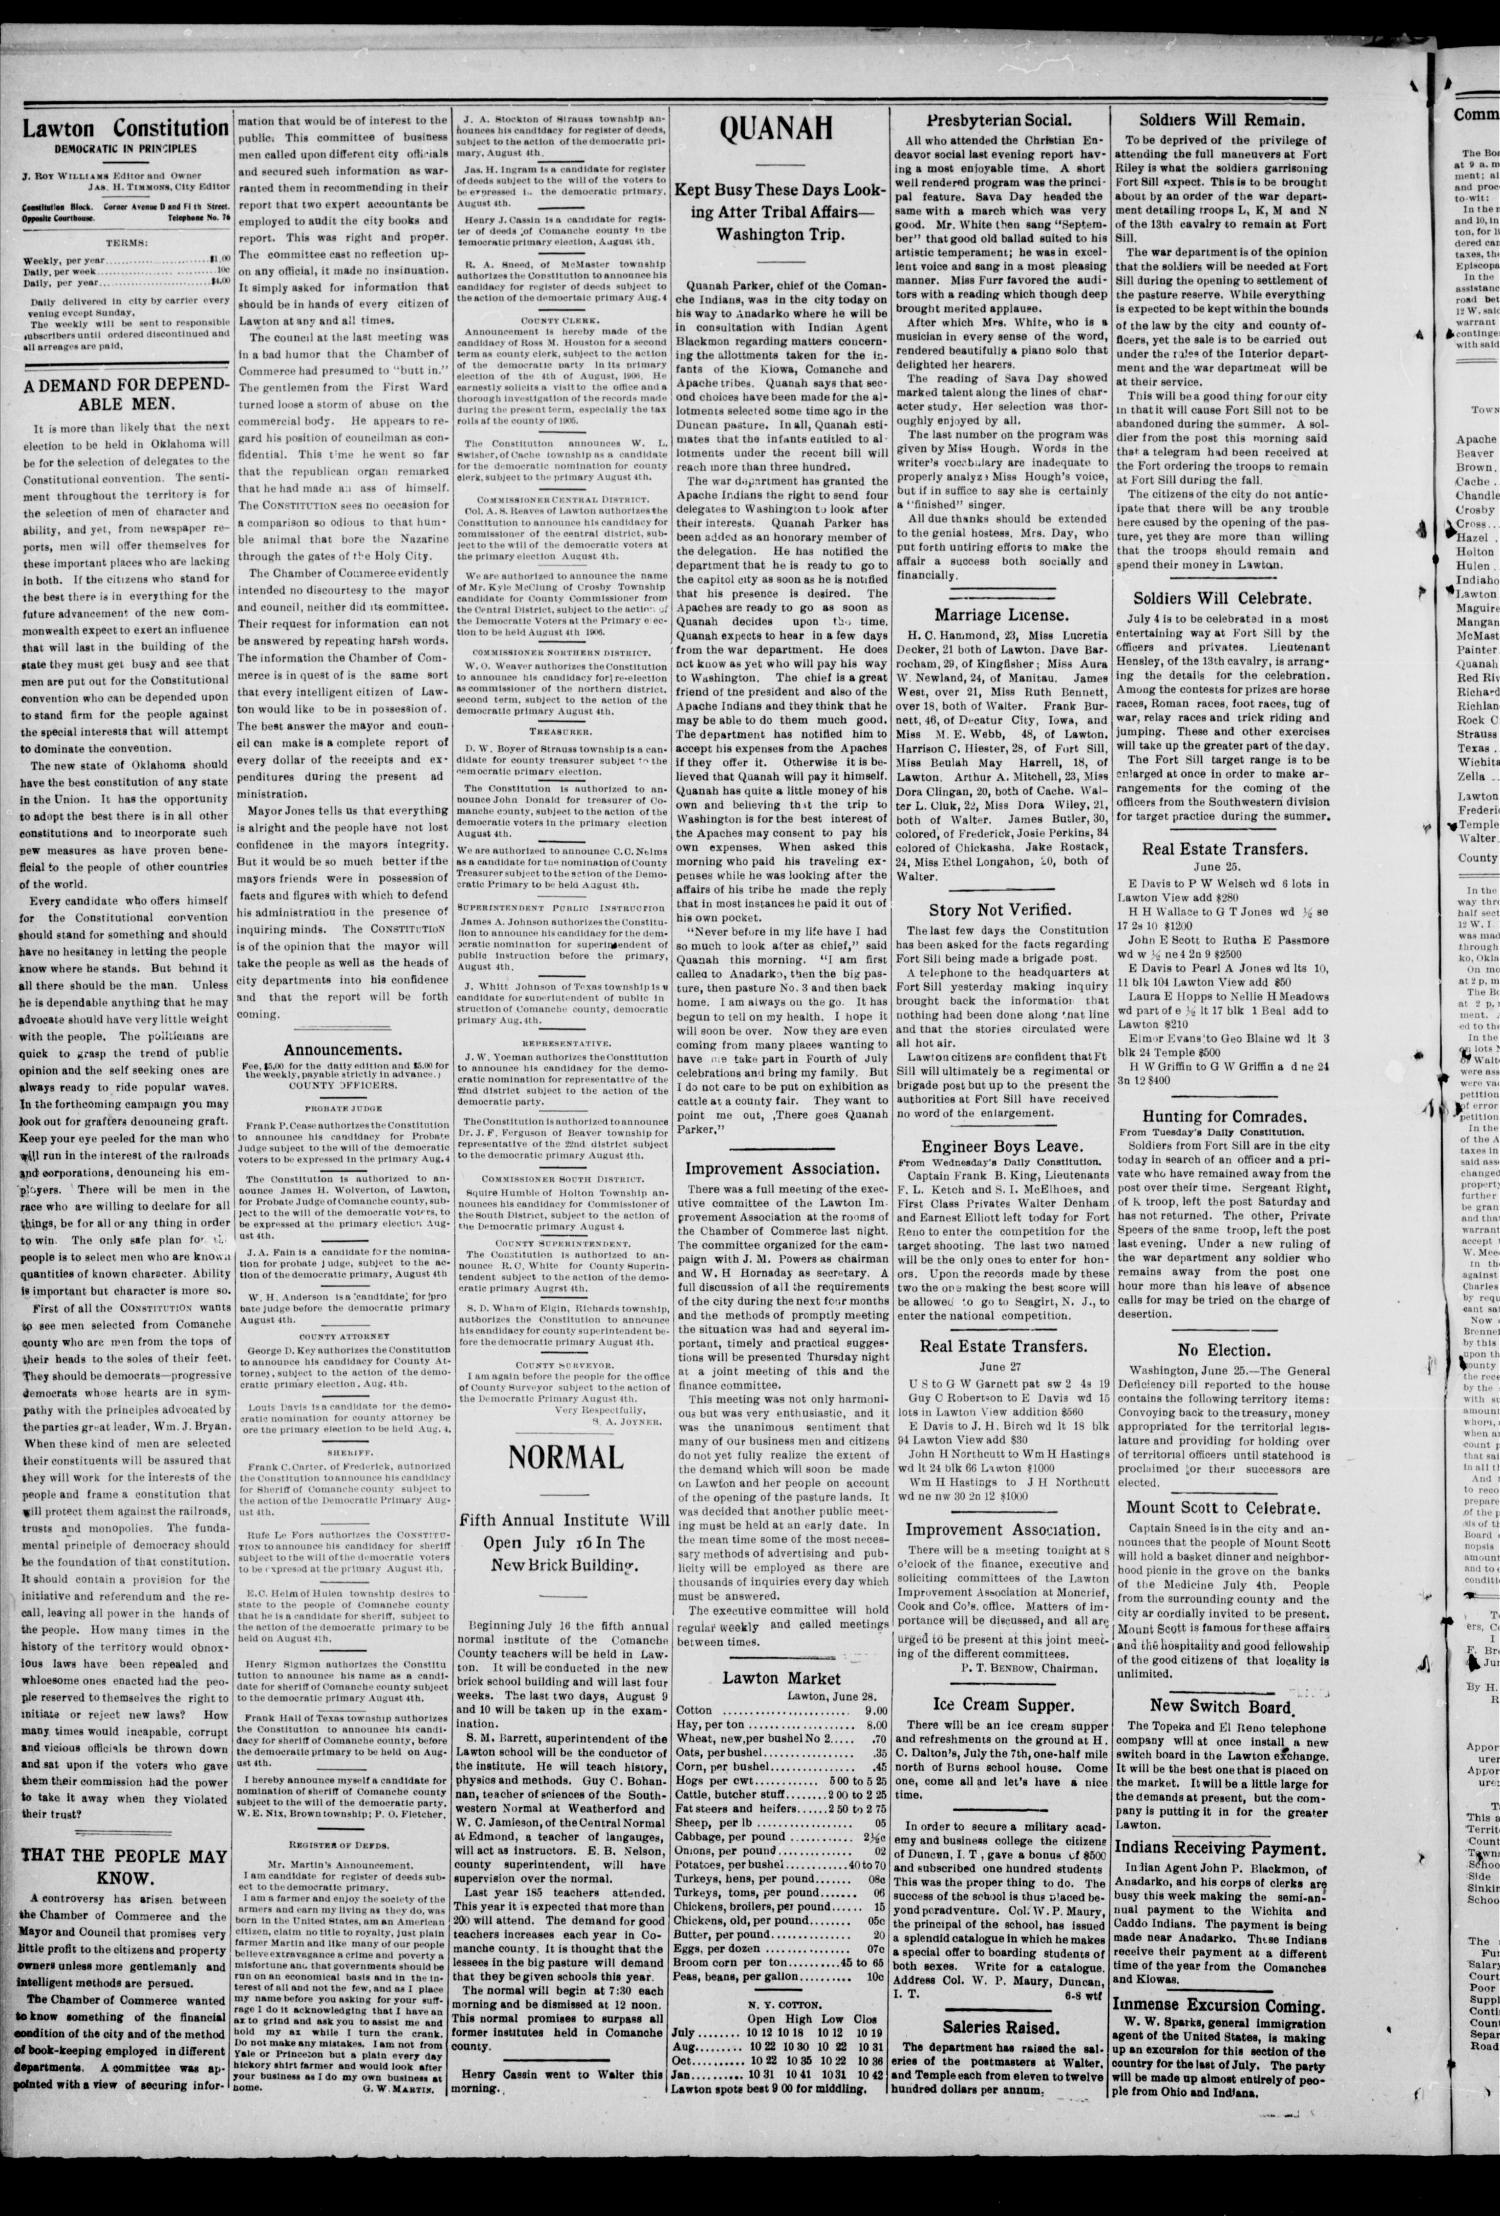 The Lawton Constitution. (Lawton, Okla.), Vol. 4, No. 16, Ed. 1 Thursday, June 28, 1906                                                                                                      [Sequence #]: 4 of 8